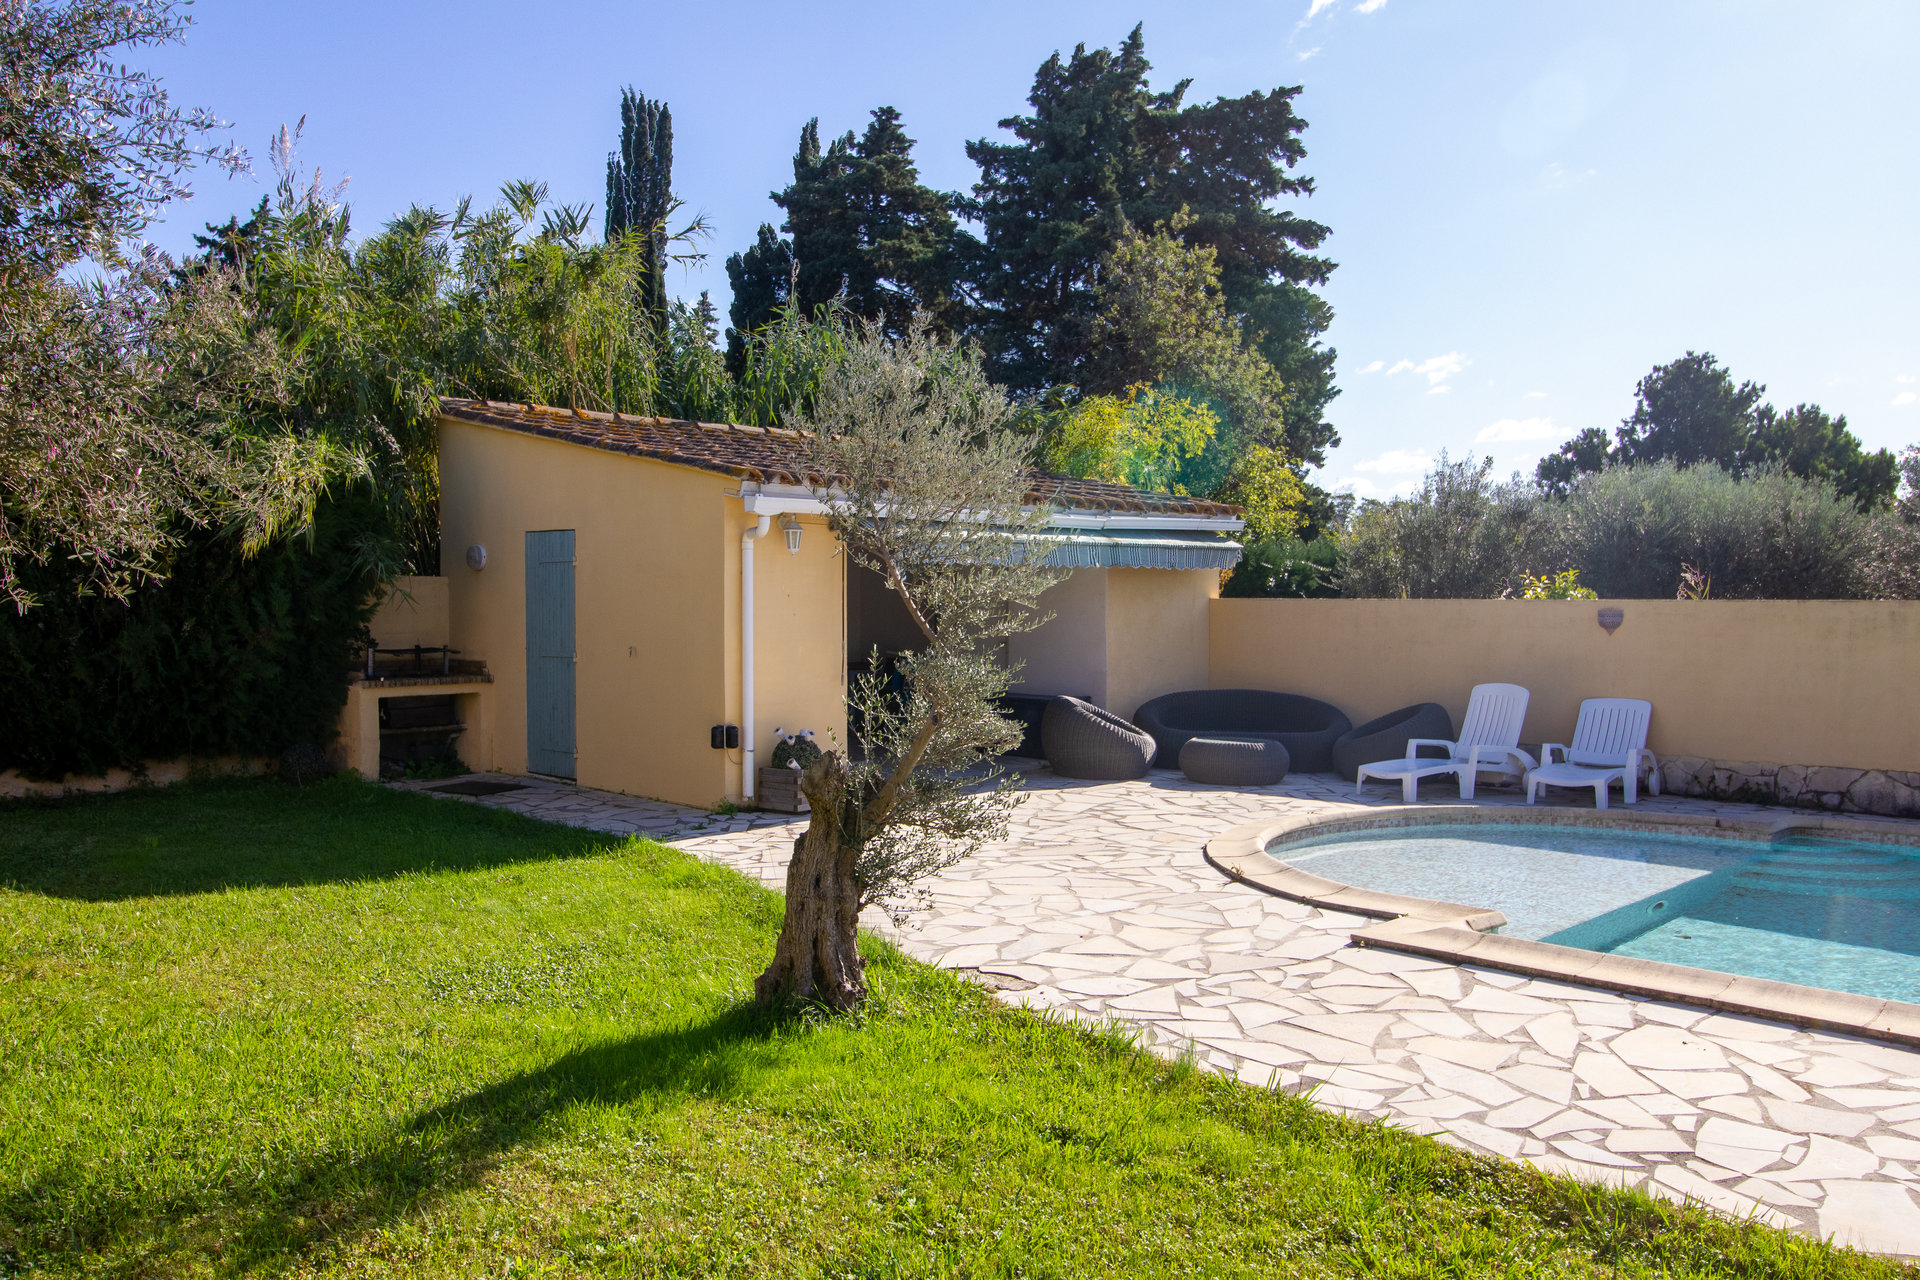 3 BEDROOM GROUND FLOOR HOUSE IN ARLES